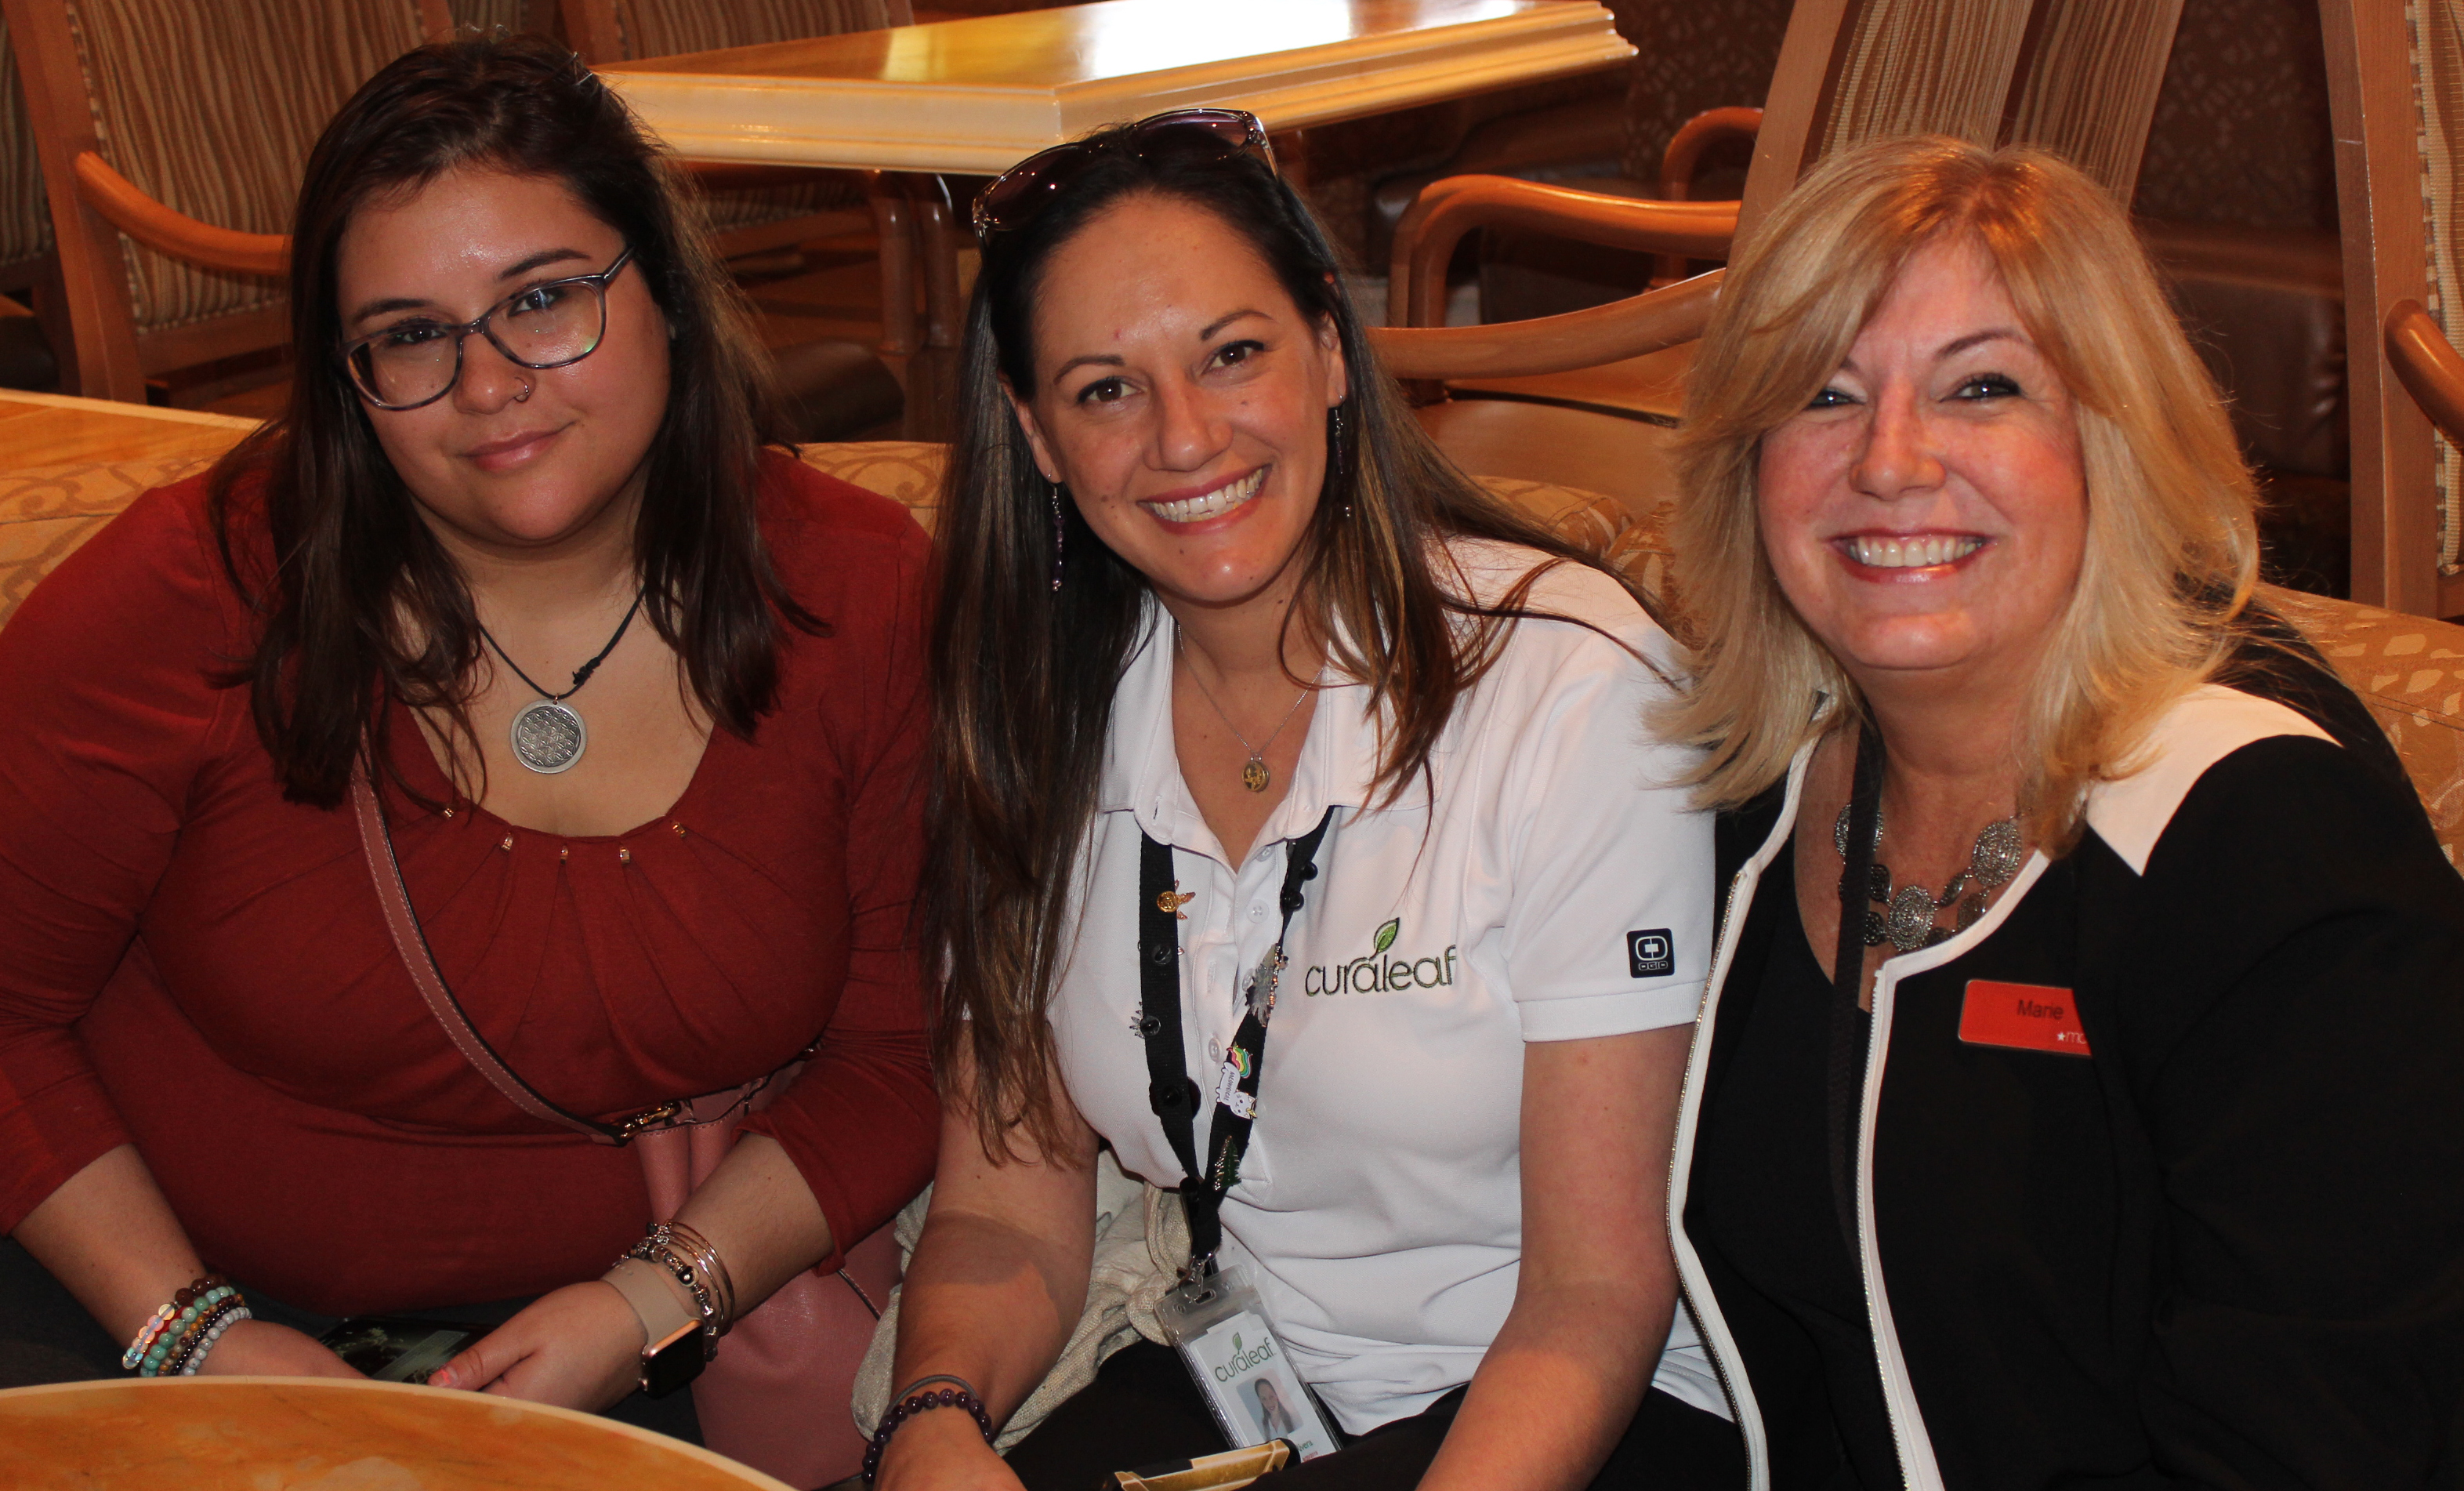 Doral Chamber of Commerce Carnival Cruise Luncheon 2019, Networking Event in Miami, Florida. DCC members enjoying the networking event at the Carnival Cruise Lounge.